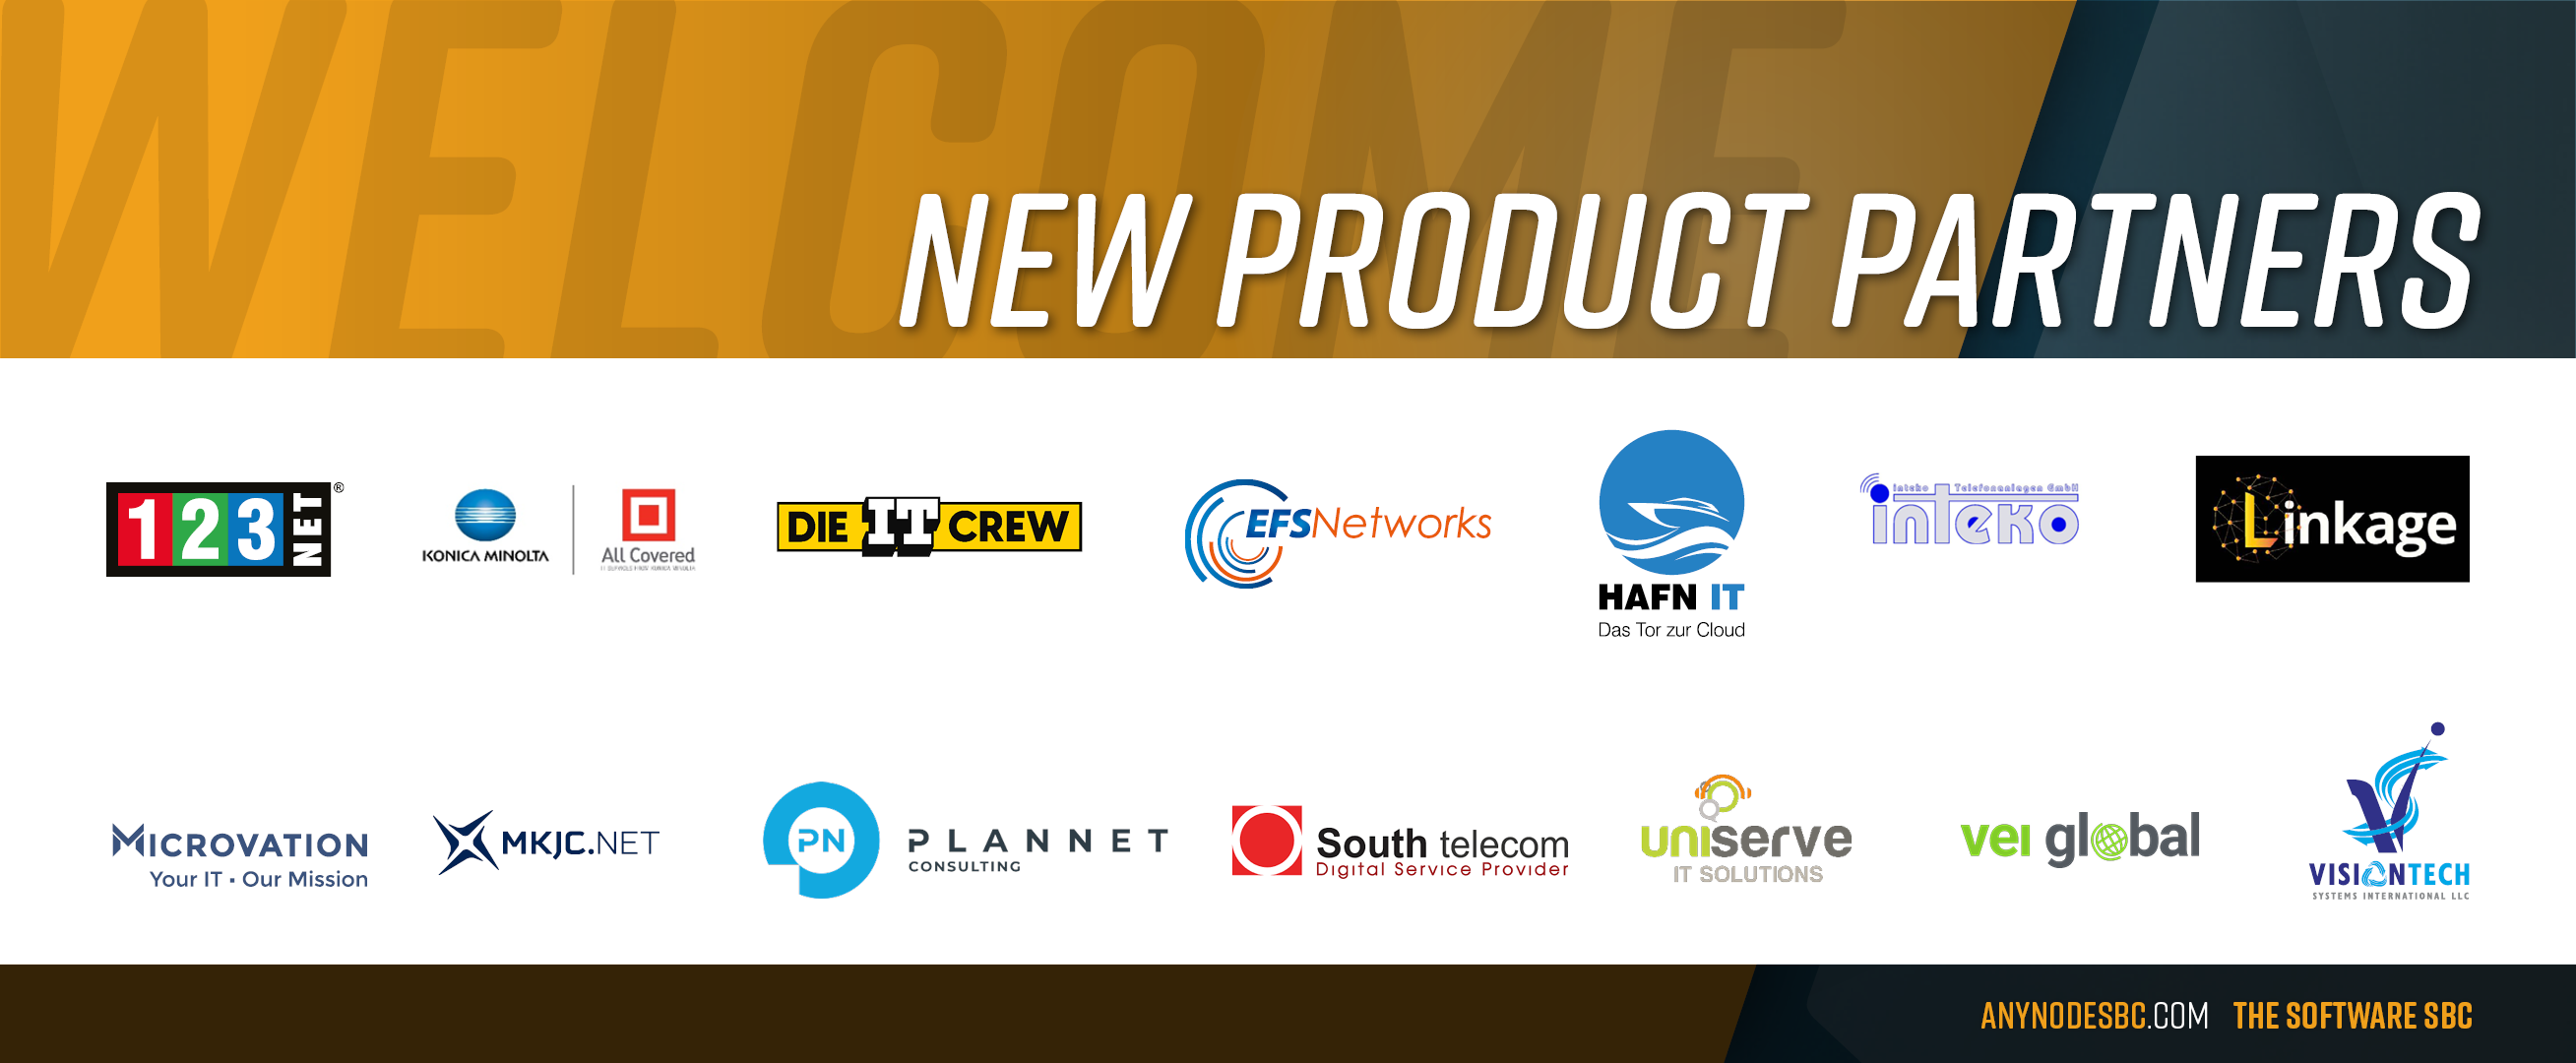 New anynode Product Partners in January 2021!